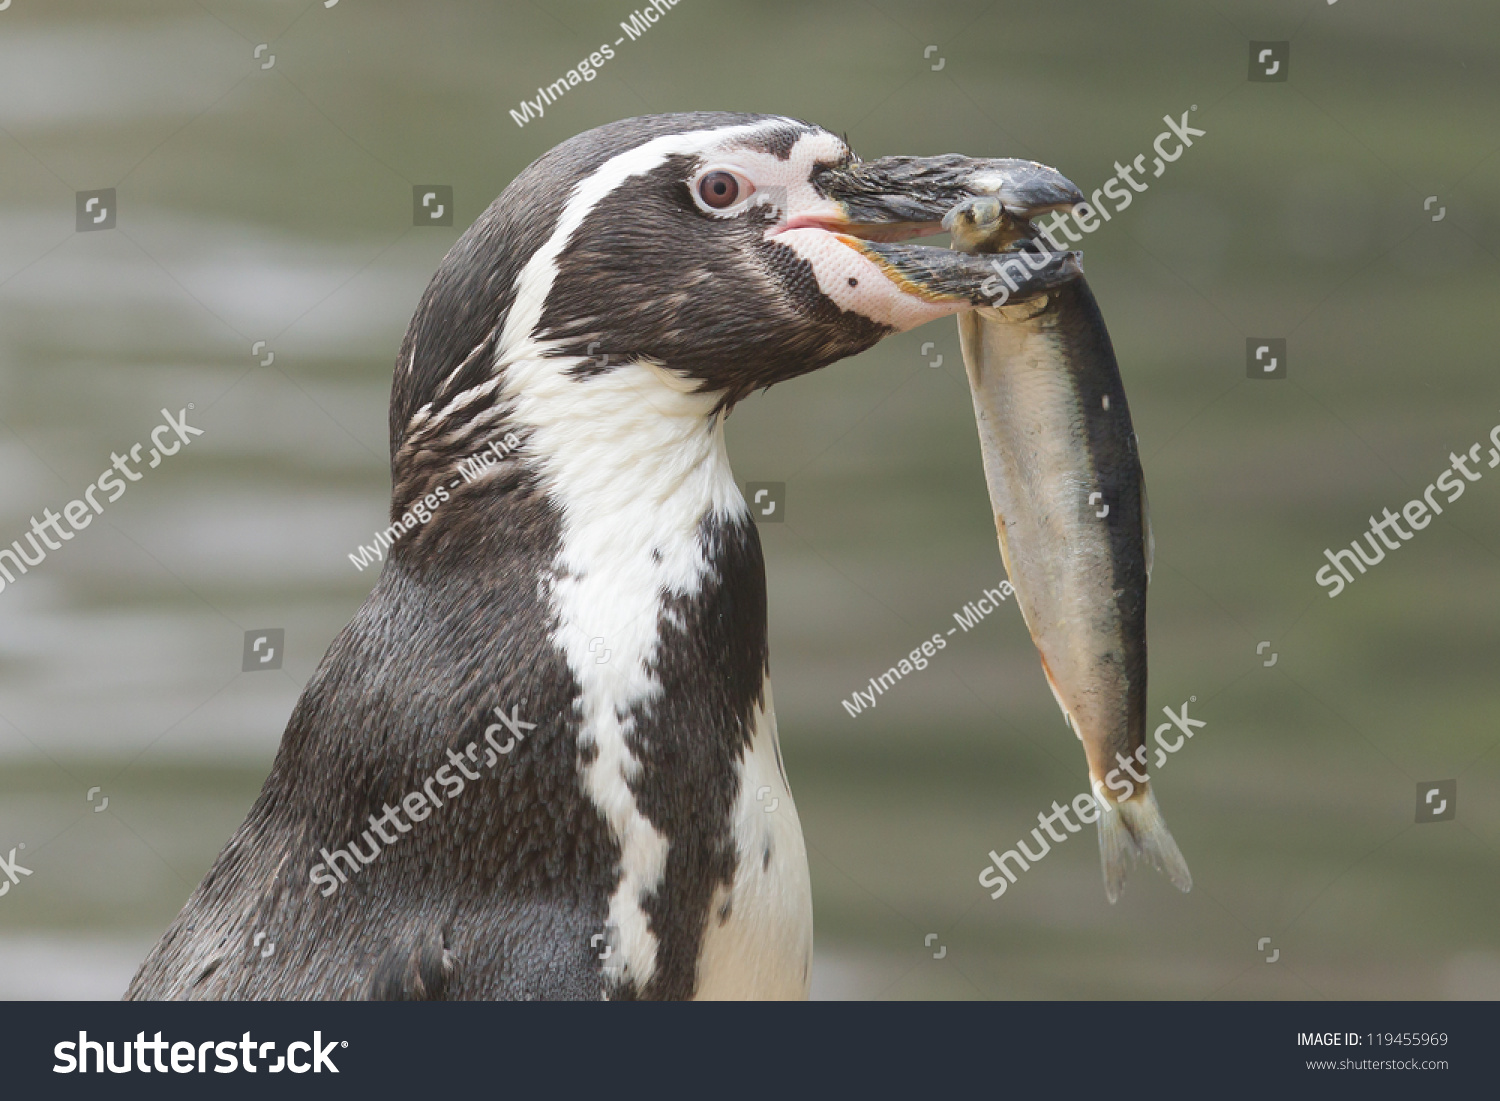 Penguin is eating a large fish isolated stock photo for Penguin and fish